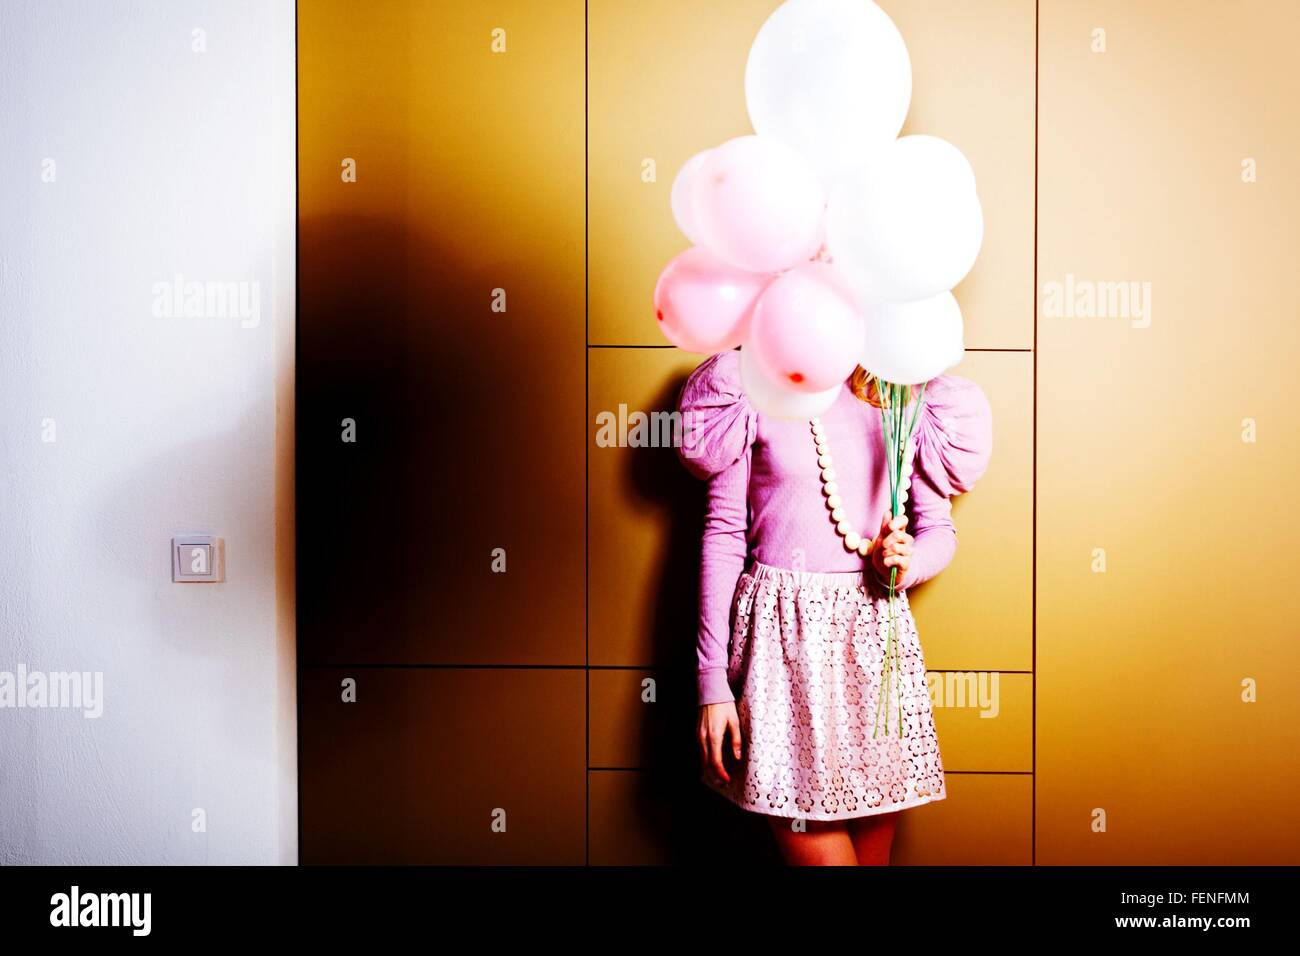 Woman Holding Balloons In Front Of Her Face - Stock Image